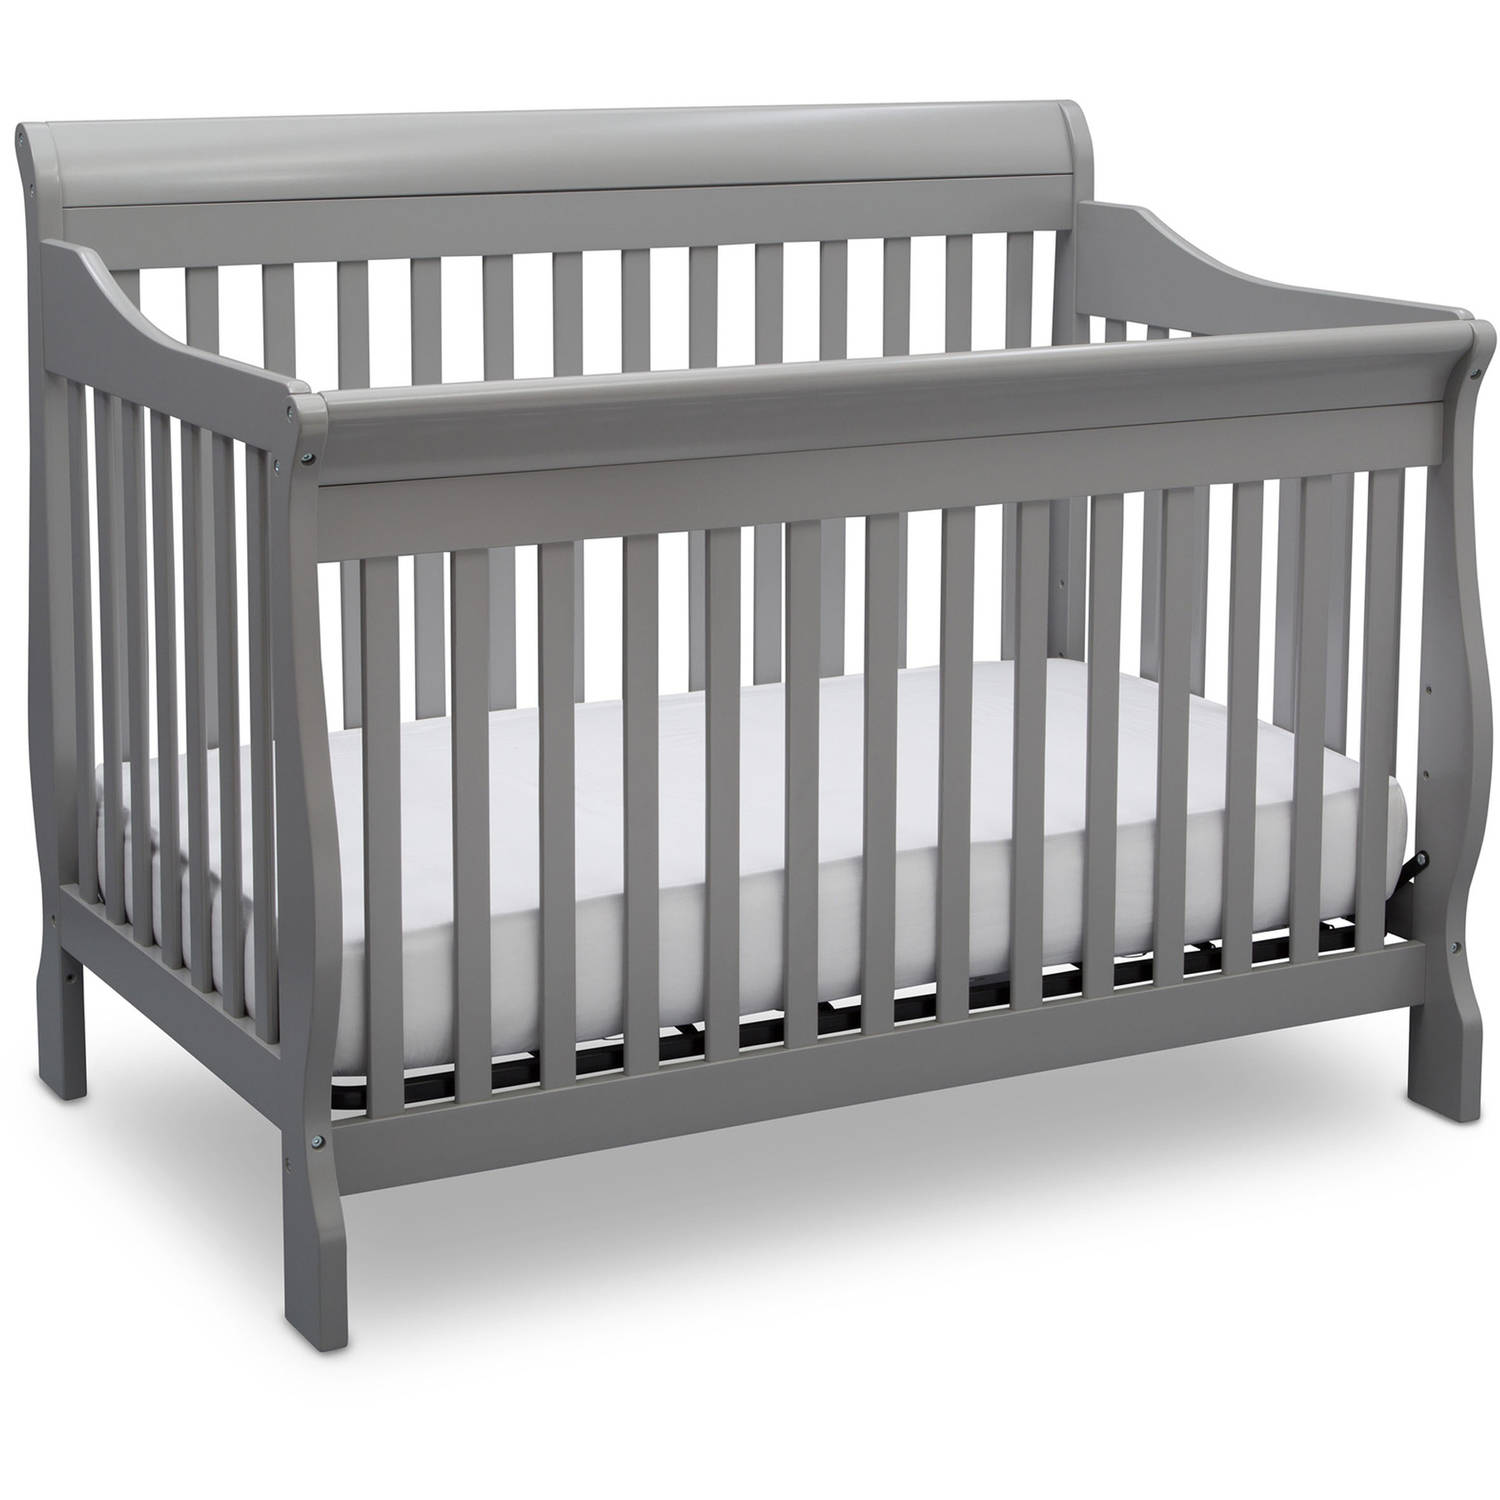 Delta Children Canton 4-in-1 Convertible Crib Gray